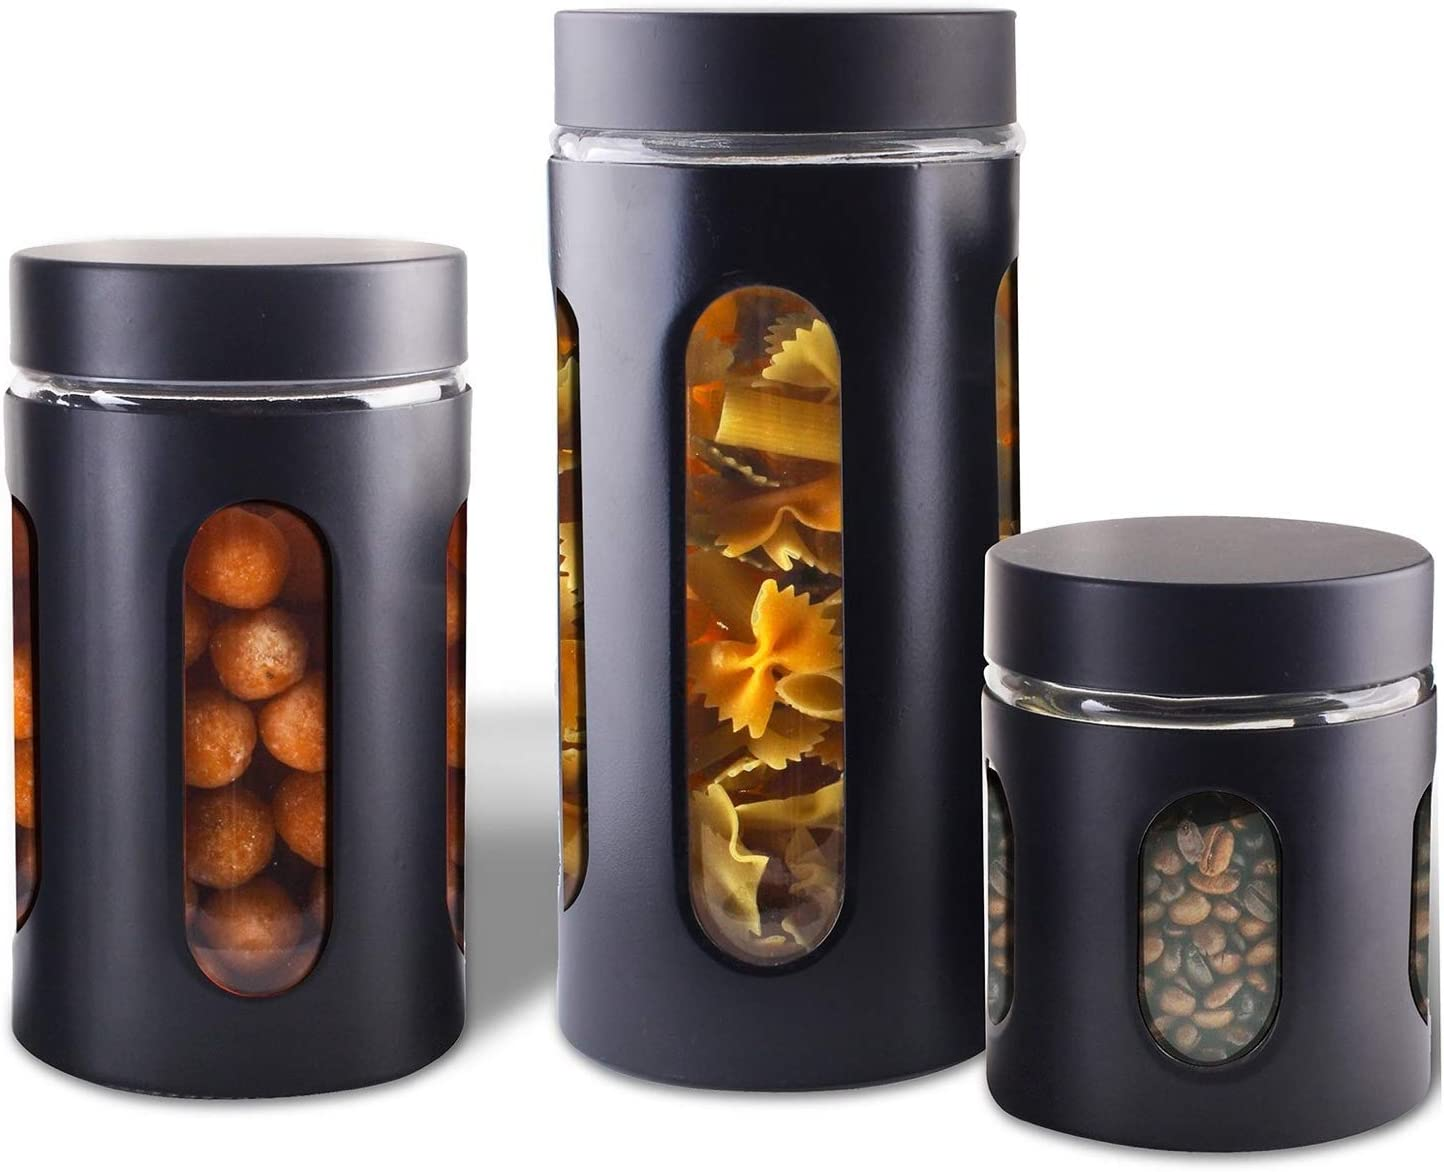 Amazon Com Air Tight Kitchen Canister Set By Premius 3 Piece Glass And Metal Canisters Quick Access And Space Saving Great Safe And Fresh Food Convenient Sizes Modern Design Matte Black Kitchen Dining